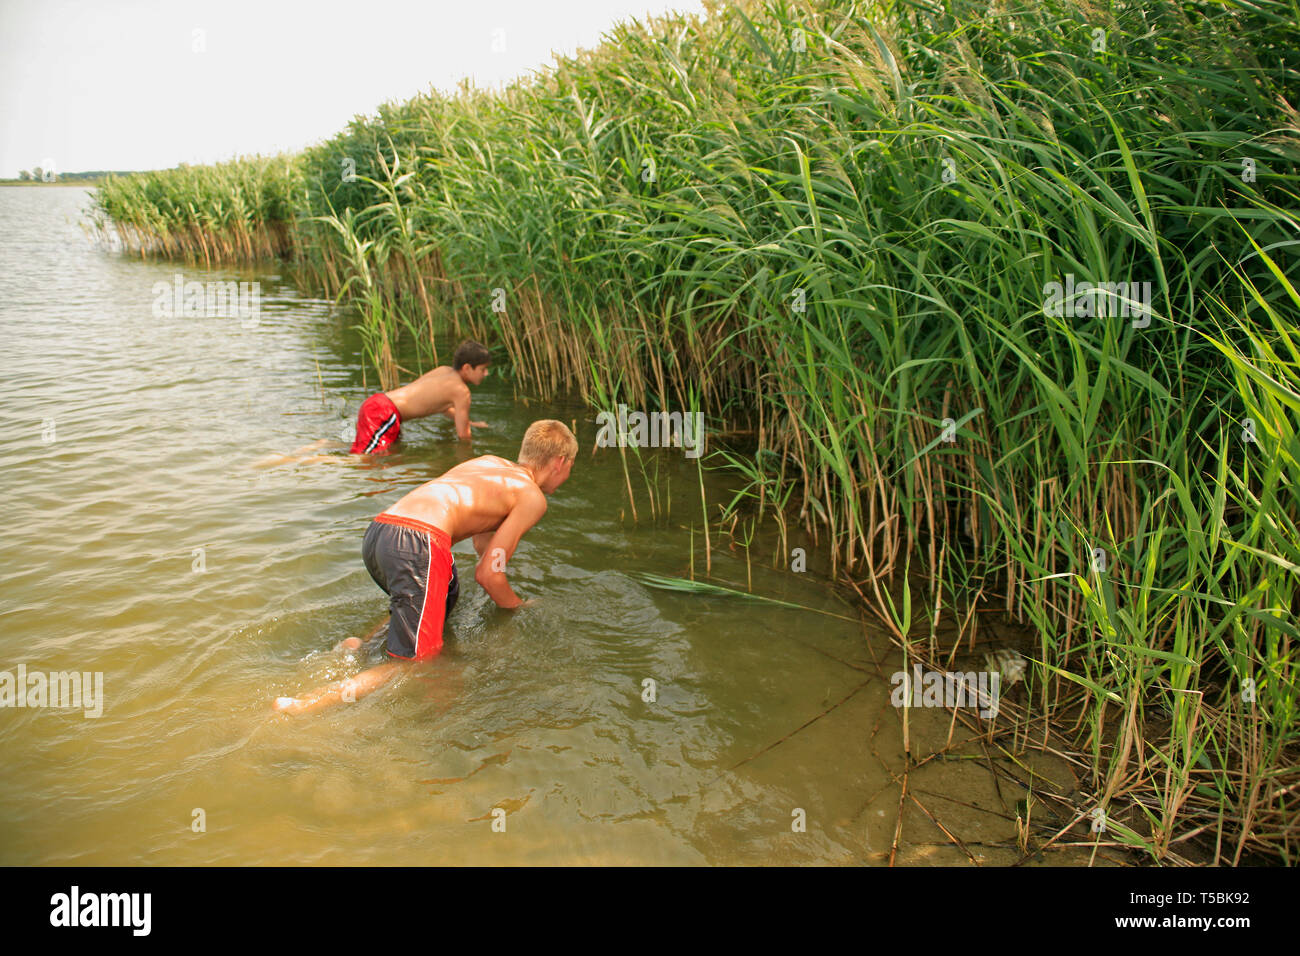 two teenage boys exploring the reed at a lakeshore - Stock Image